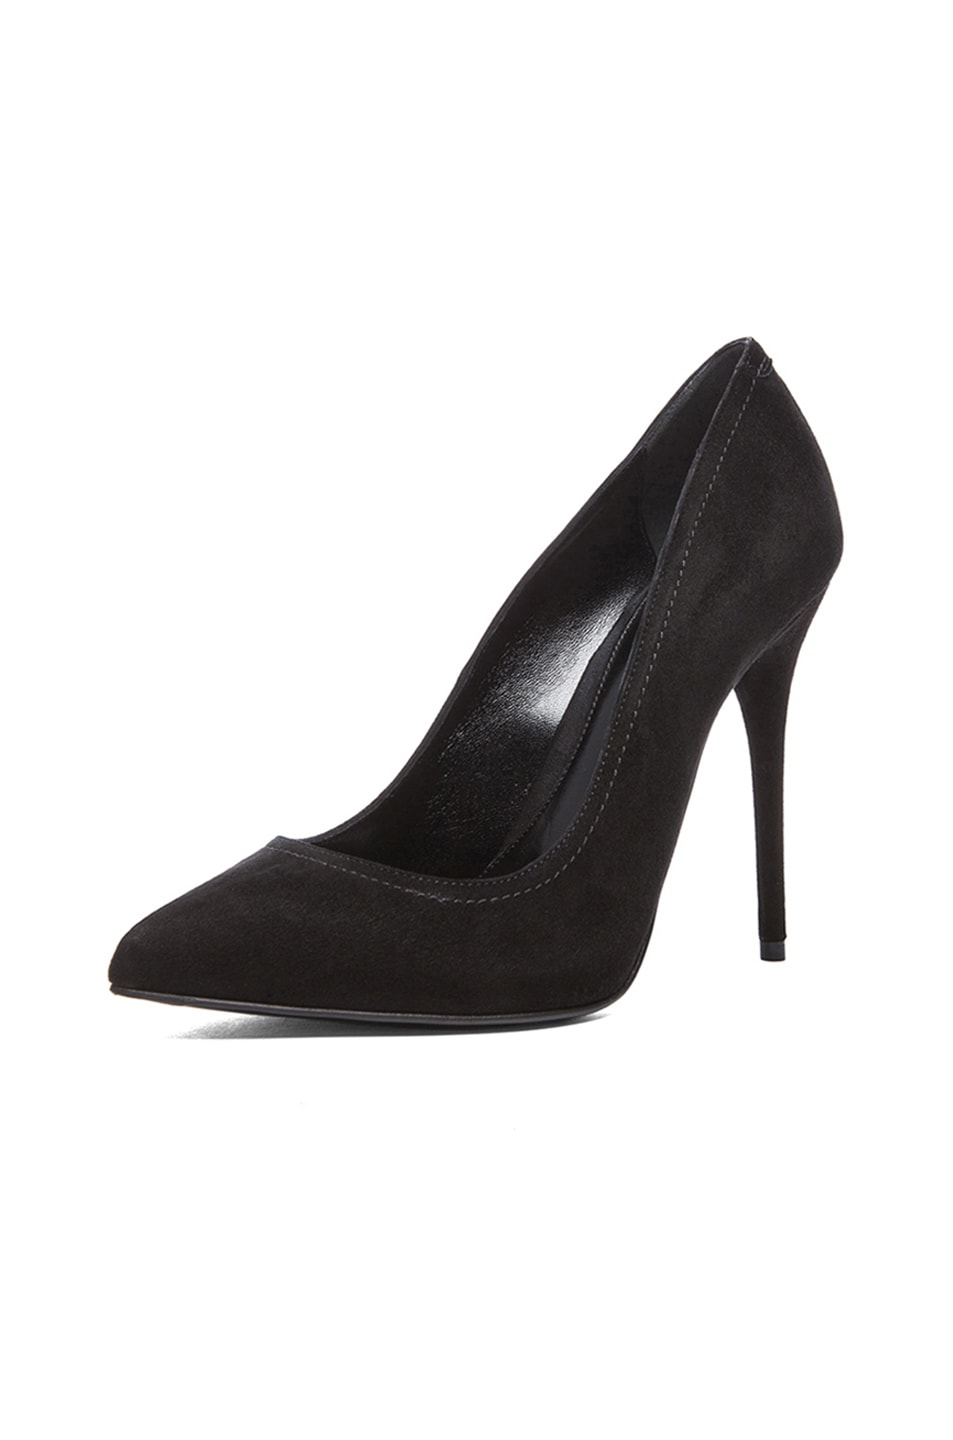 Image 2 of Alexander McQueen Pointy Suede Pumps in Black